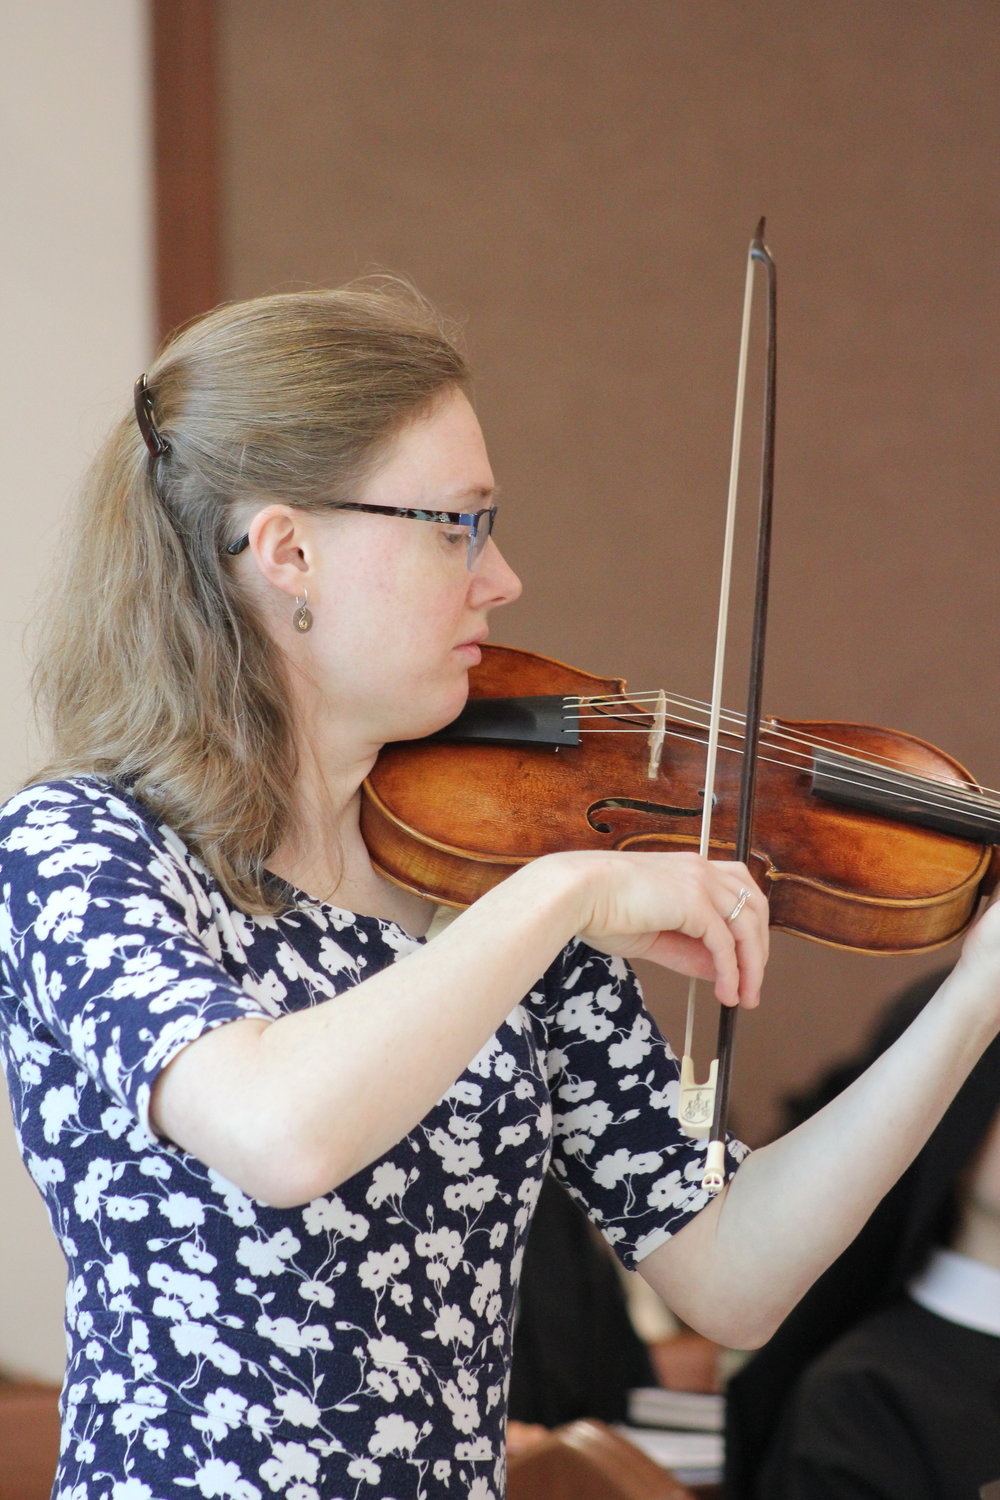 Christine Wilkinson Beckman (St. Olaf College classmate of Sr. Cecilia Maria) treated us to beautiful Baroque violin preludes.